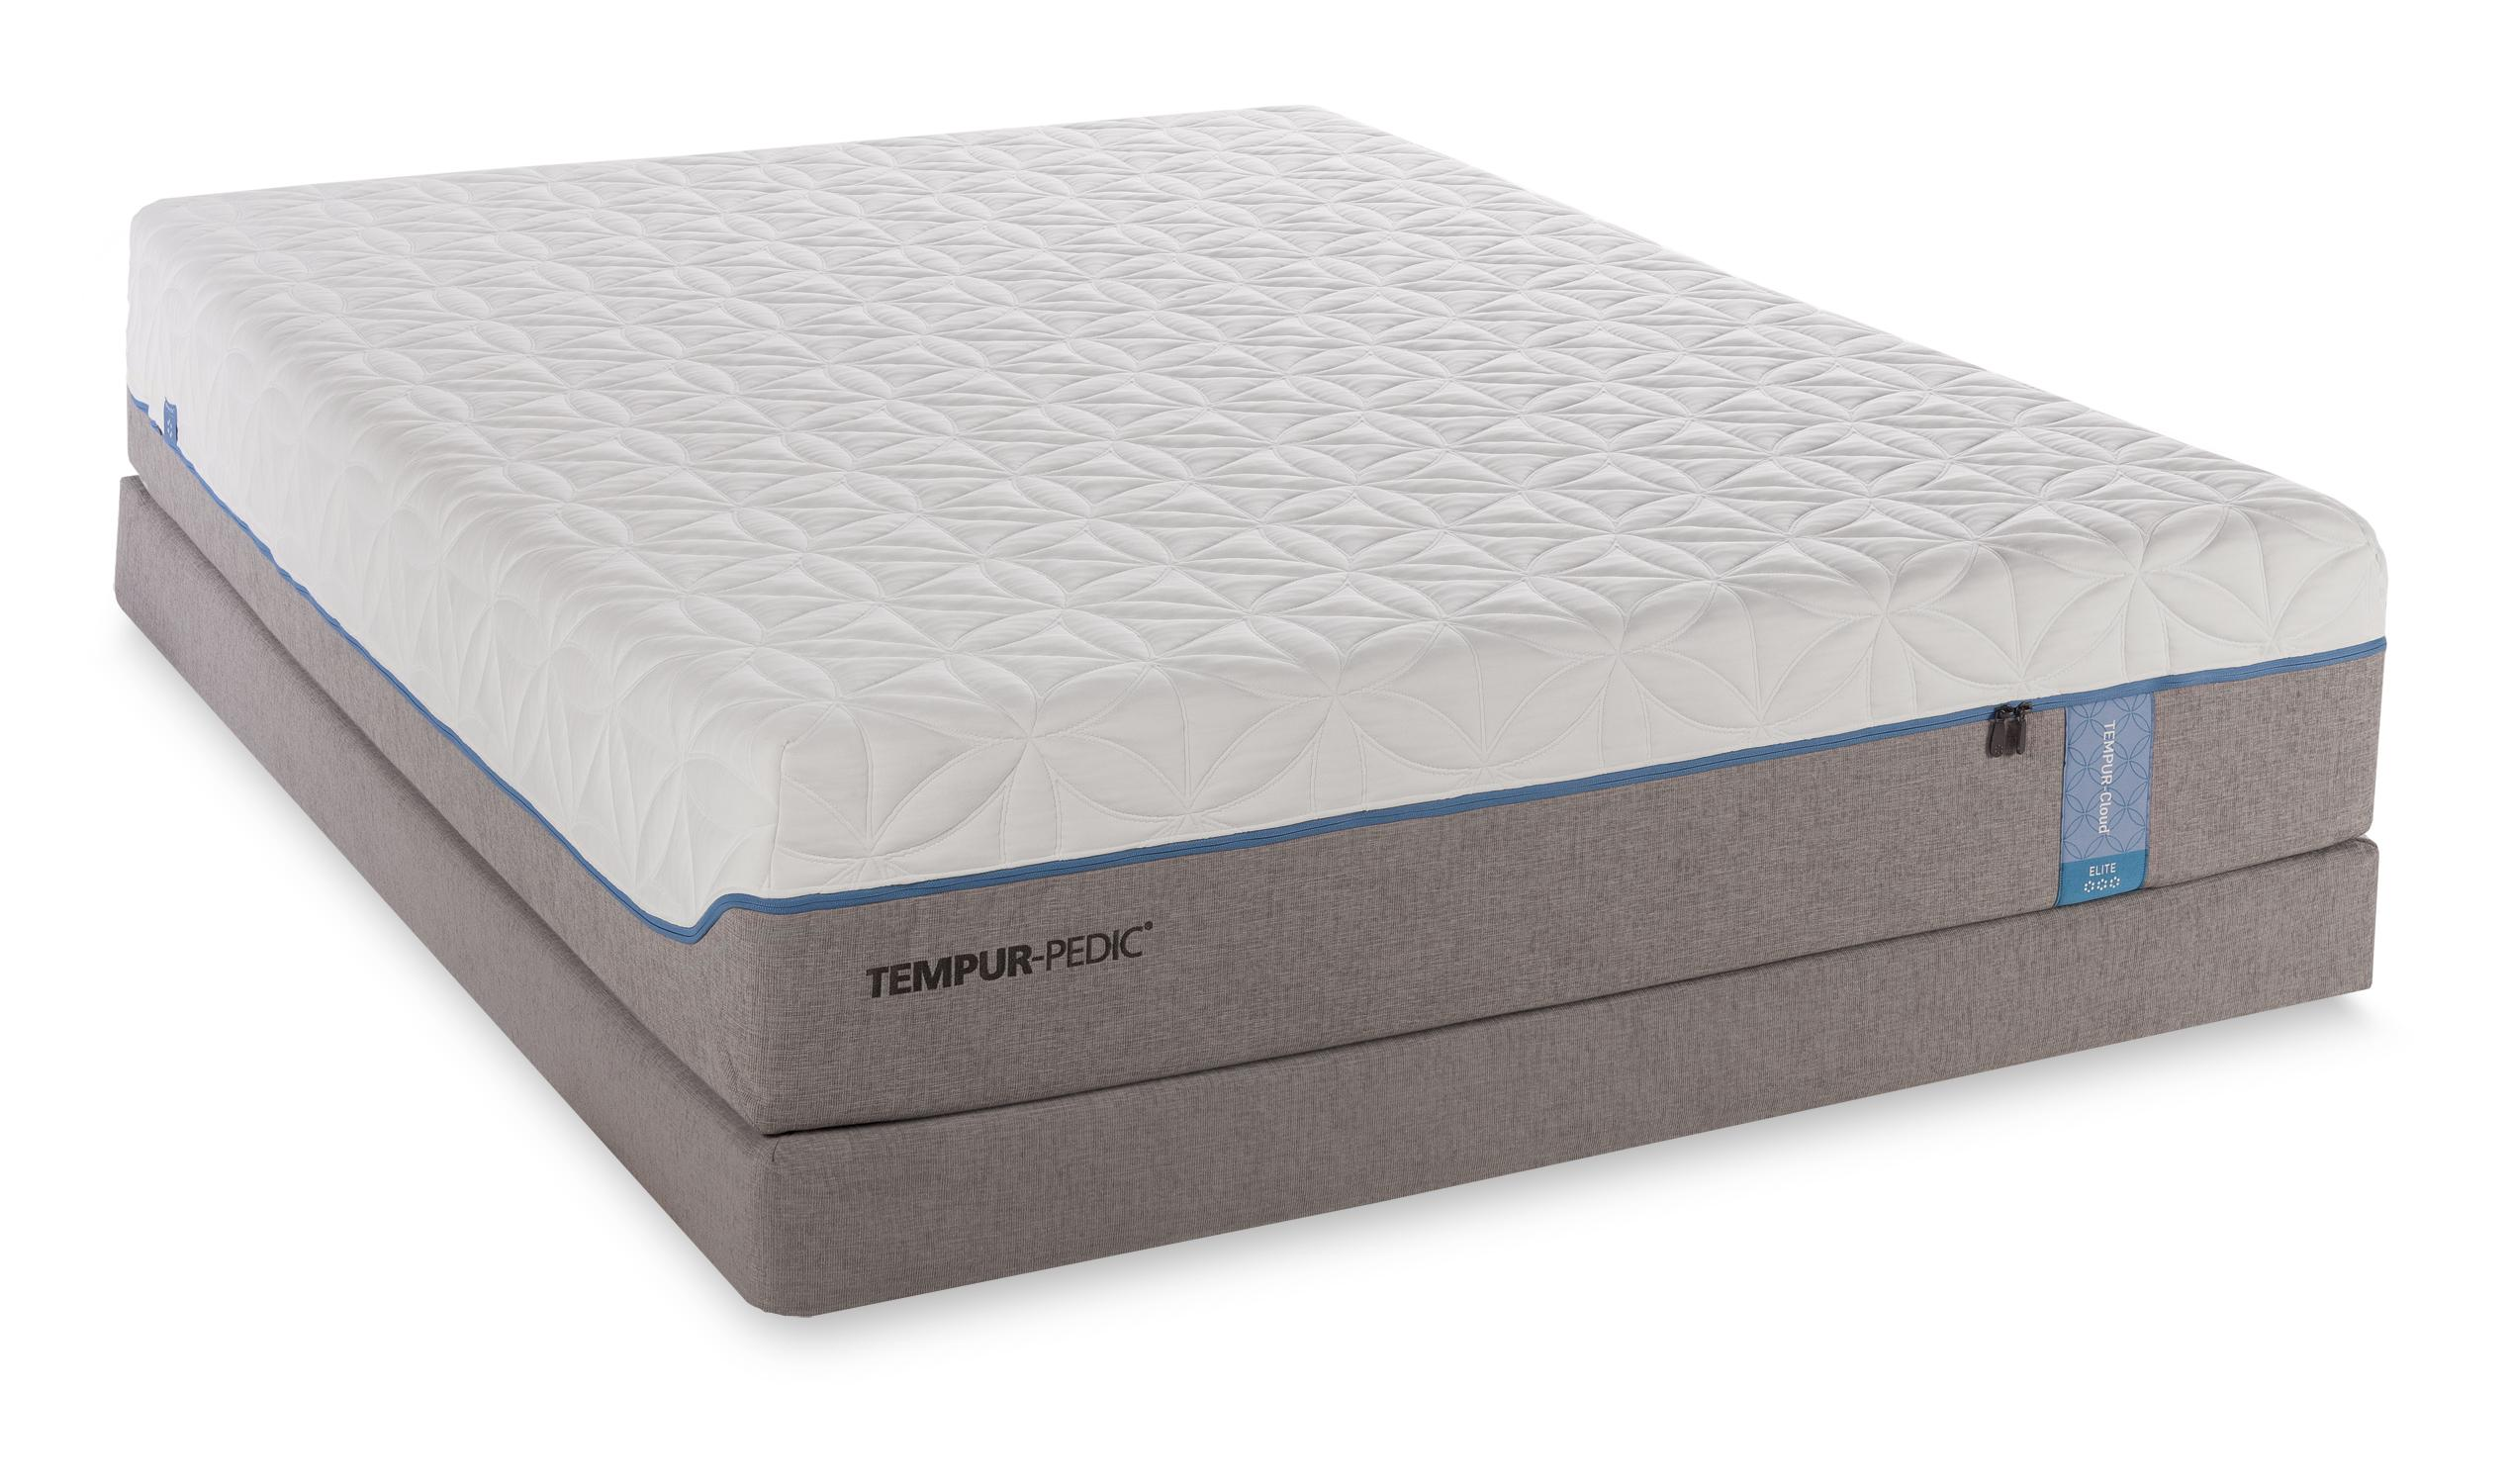 Tempurpedic Mattress King Size Tempur Pedic Tempur Cloud Elite Cal King Extra Soft